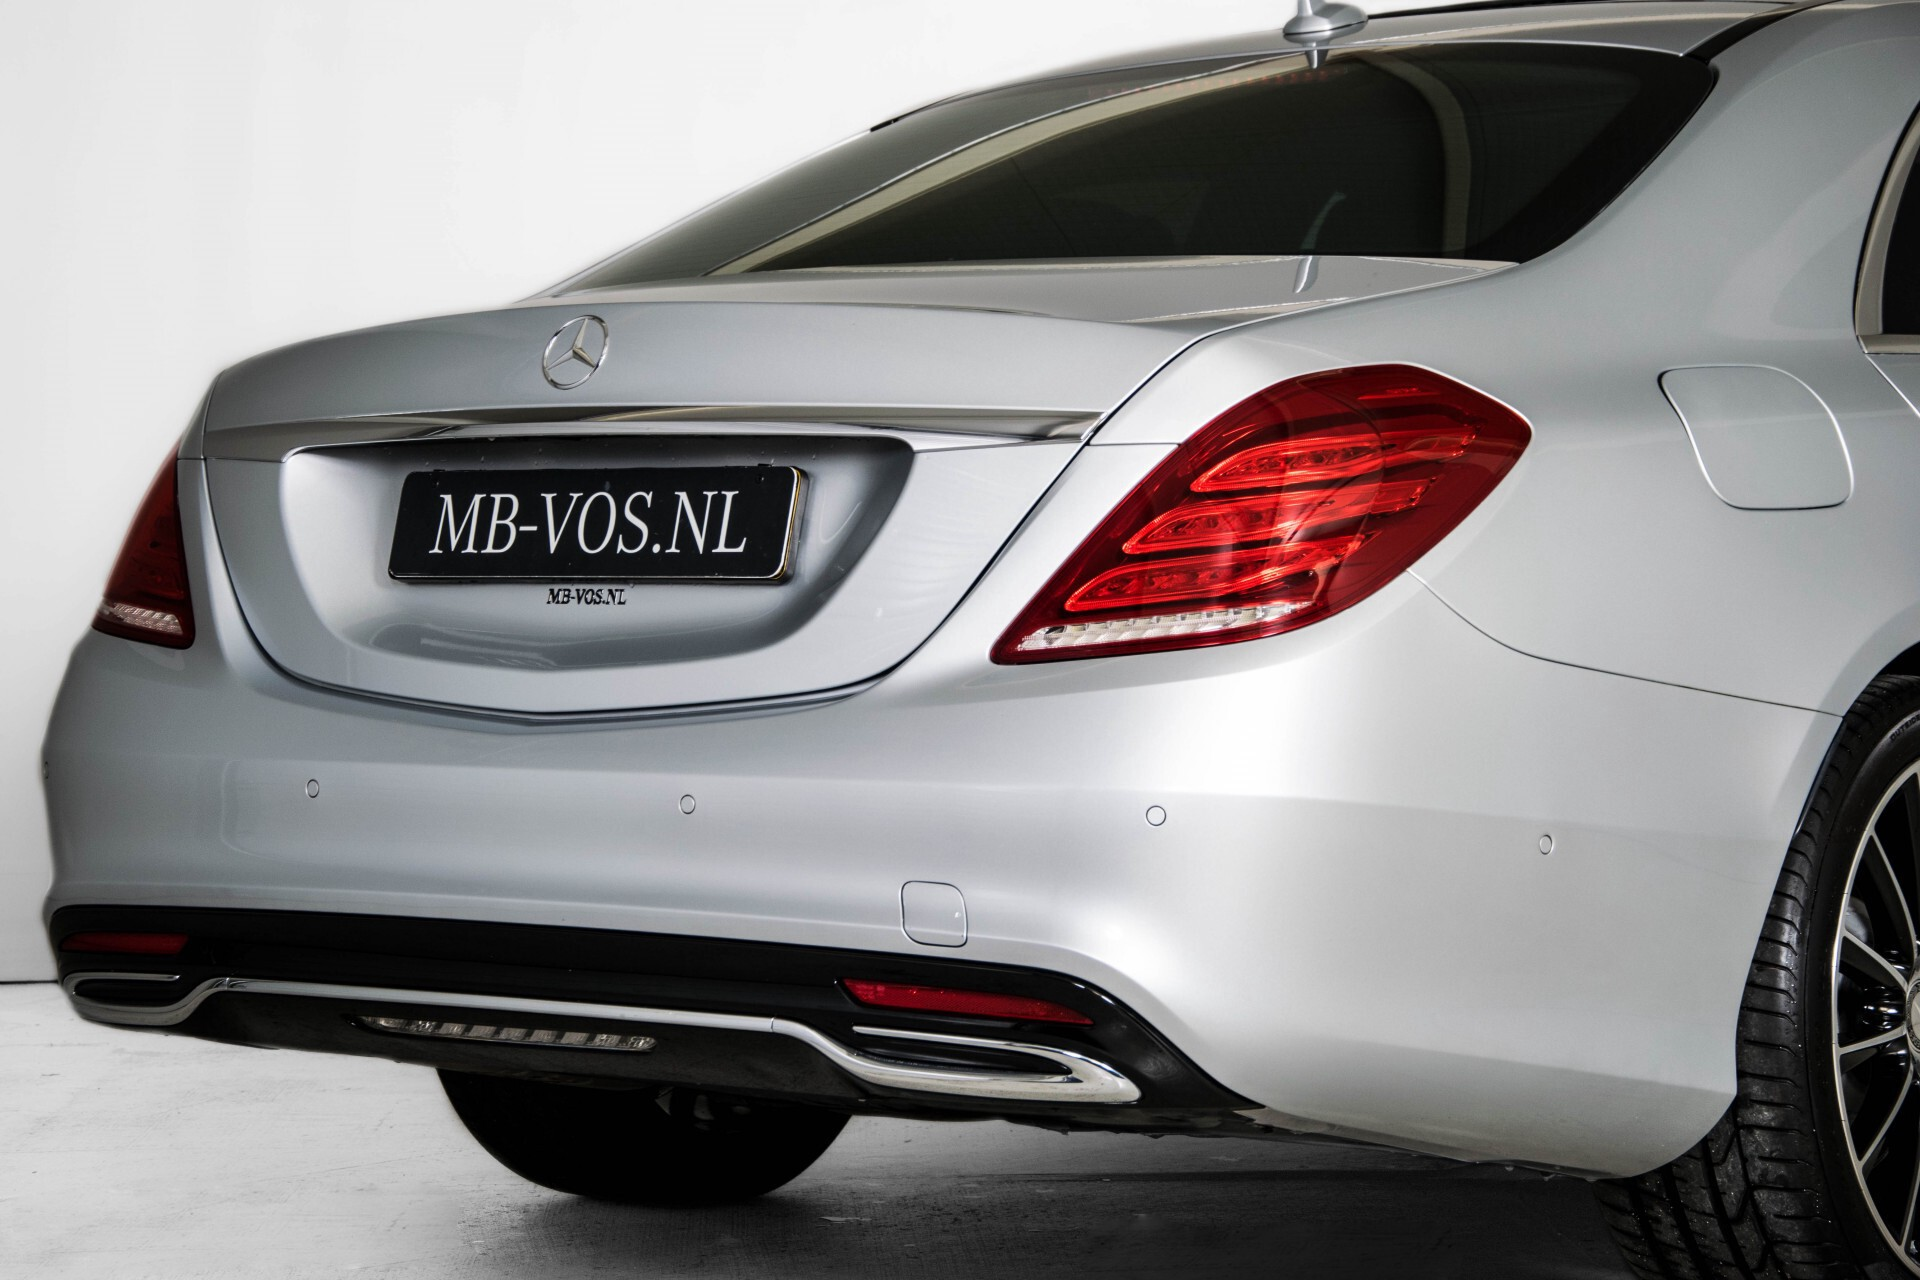 Mercedes-Benz S-Klasse 350 Bluetec 4-M AMG Plus Exclusive Distronic/Keyless/Panorama Aut7 Foto 55